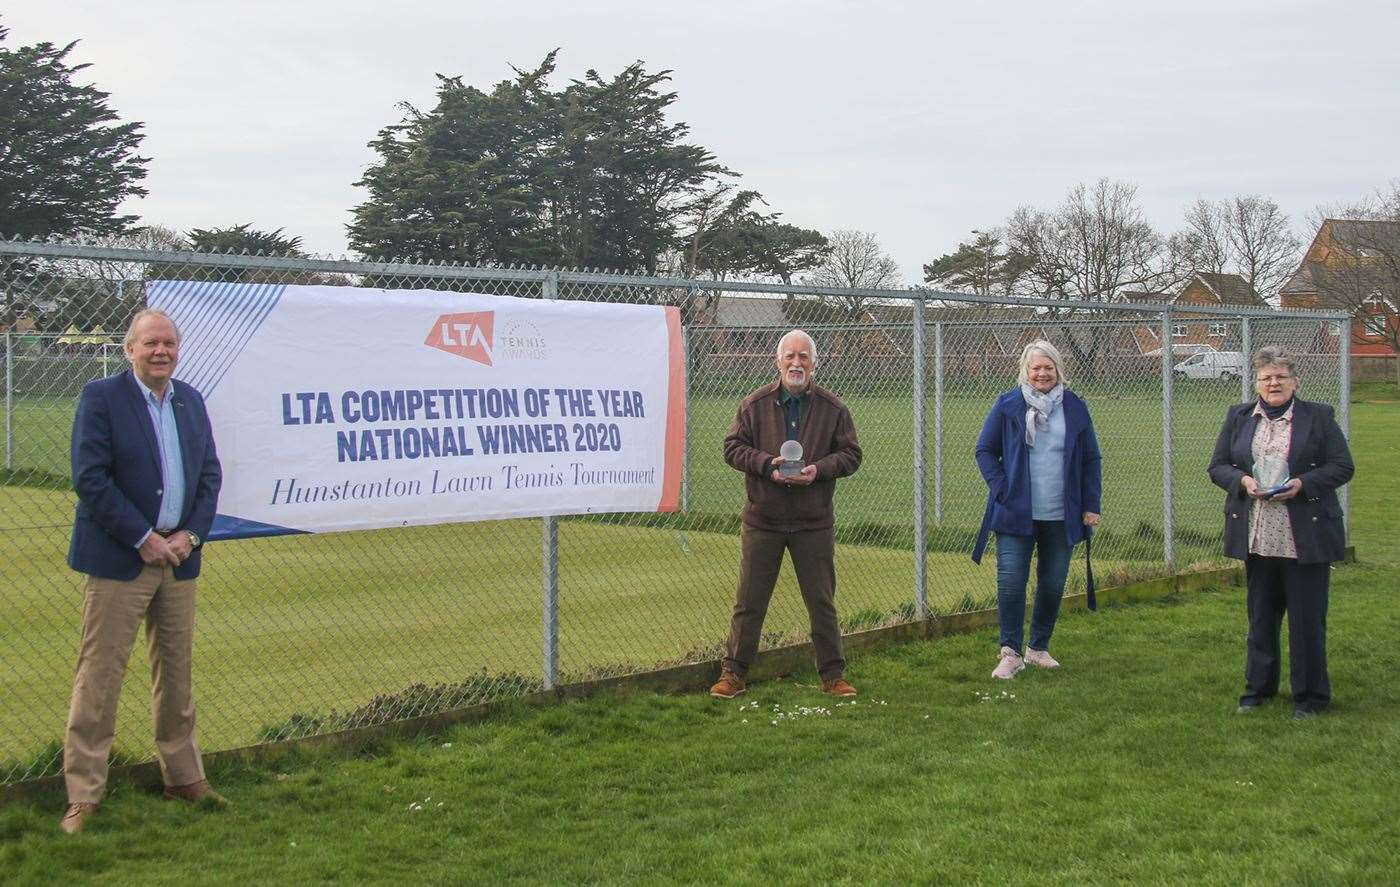 Pictured above is Chris Holt (second from left) and Janice Campbell (right), treasurer, Hunstanton Lawn Tennis Tournament, with the Lawn Tennis Association (LTA) trophies. Looking on are LTA president David Rawlinson and Heather Bottomley, LTA councillor for Norfolk. (46182800)